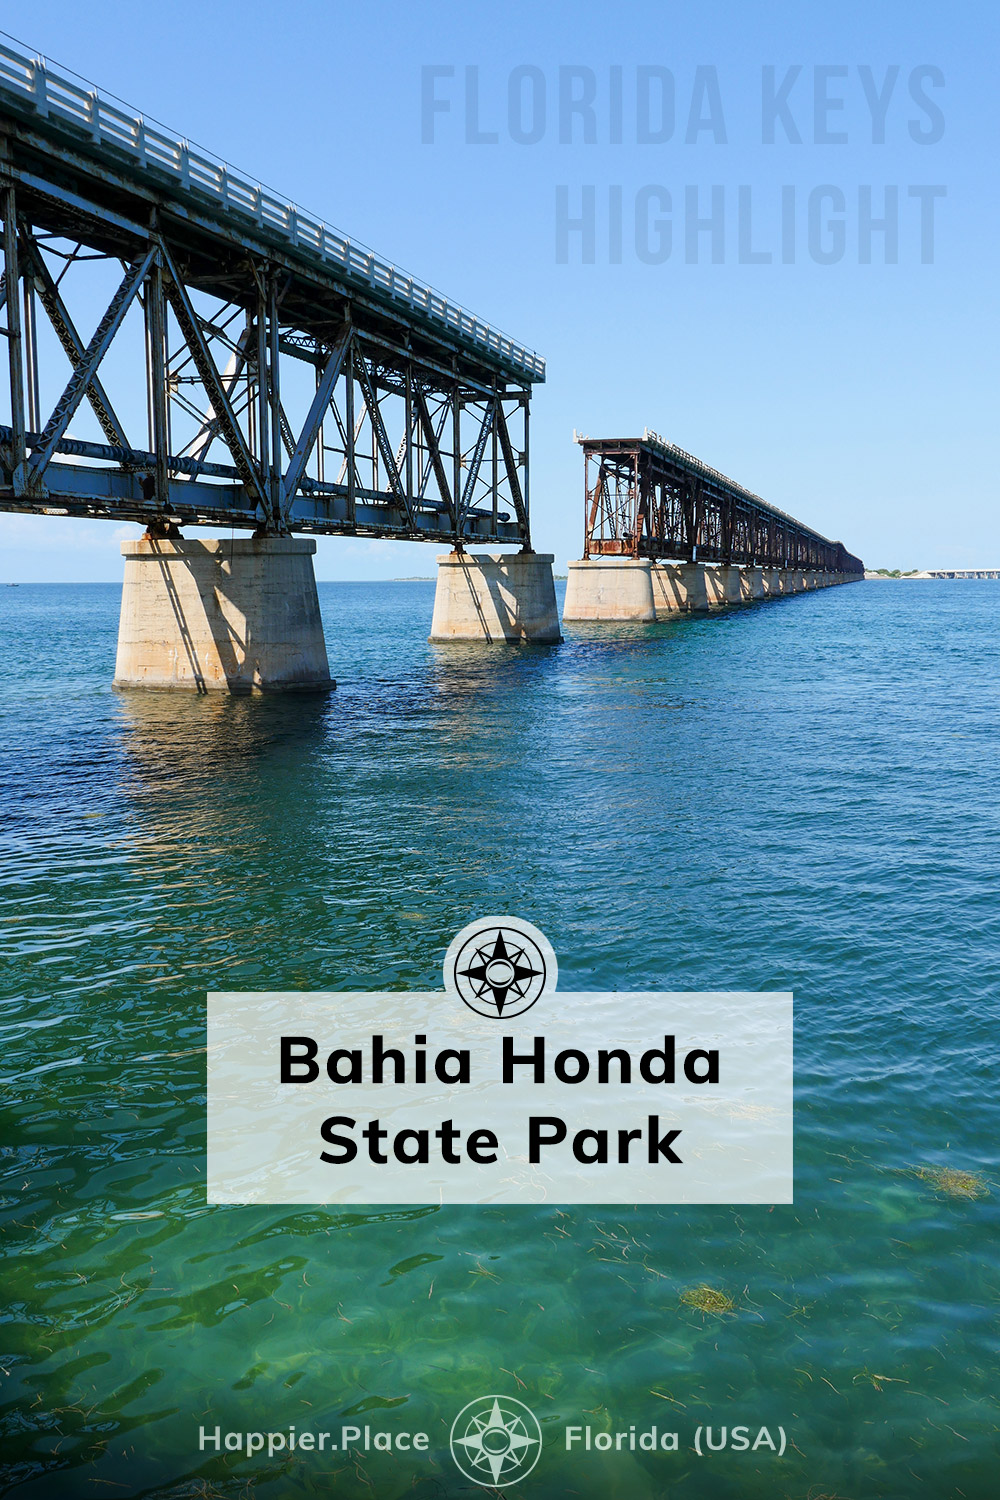 The 100-year old abandoned Bahia Honda Bridge adds a photographic accent and a stunning vantage point to see the gin-clear waters around the Florida Keys. Explore the bridge, beaches and clear water at Bahia Honda State Park, near Key West on the Florida Keys in Florida, USA.  #HappierPlace #Florida #travelguide #USA #FloridaKeys